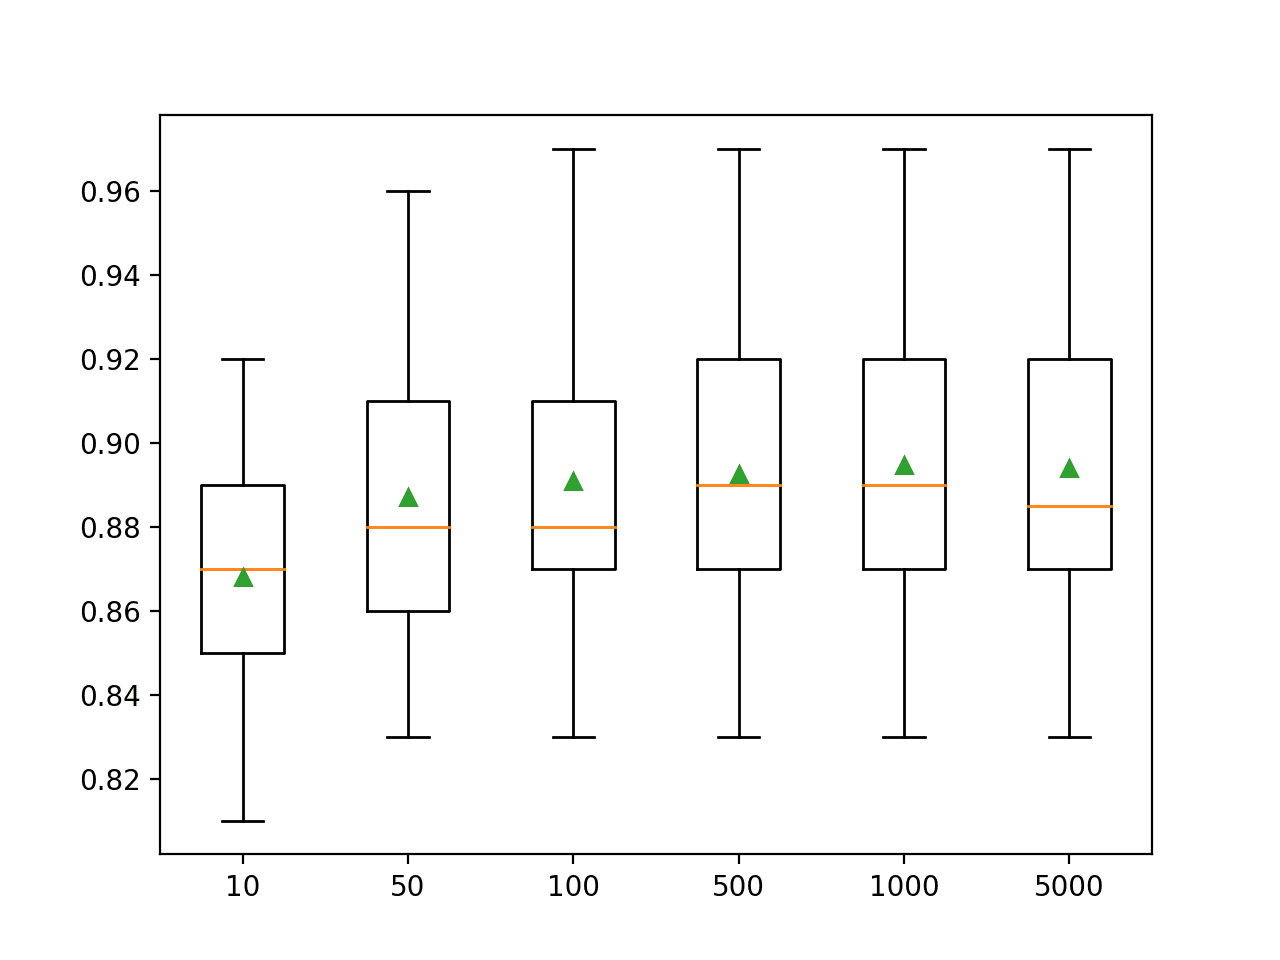 Box Plots of XGBoost Random Forest Ensemble Size vs. Classification Accuracy